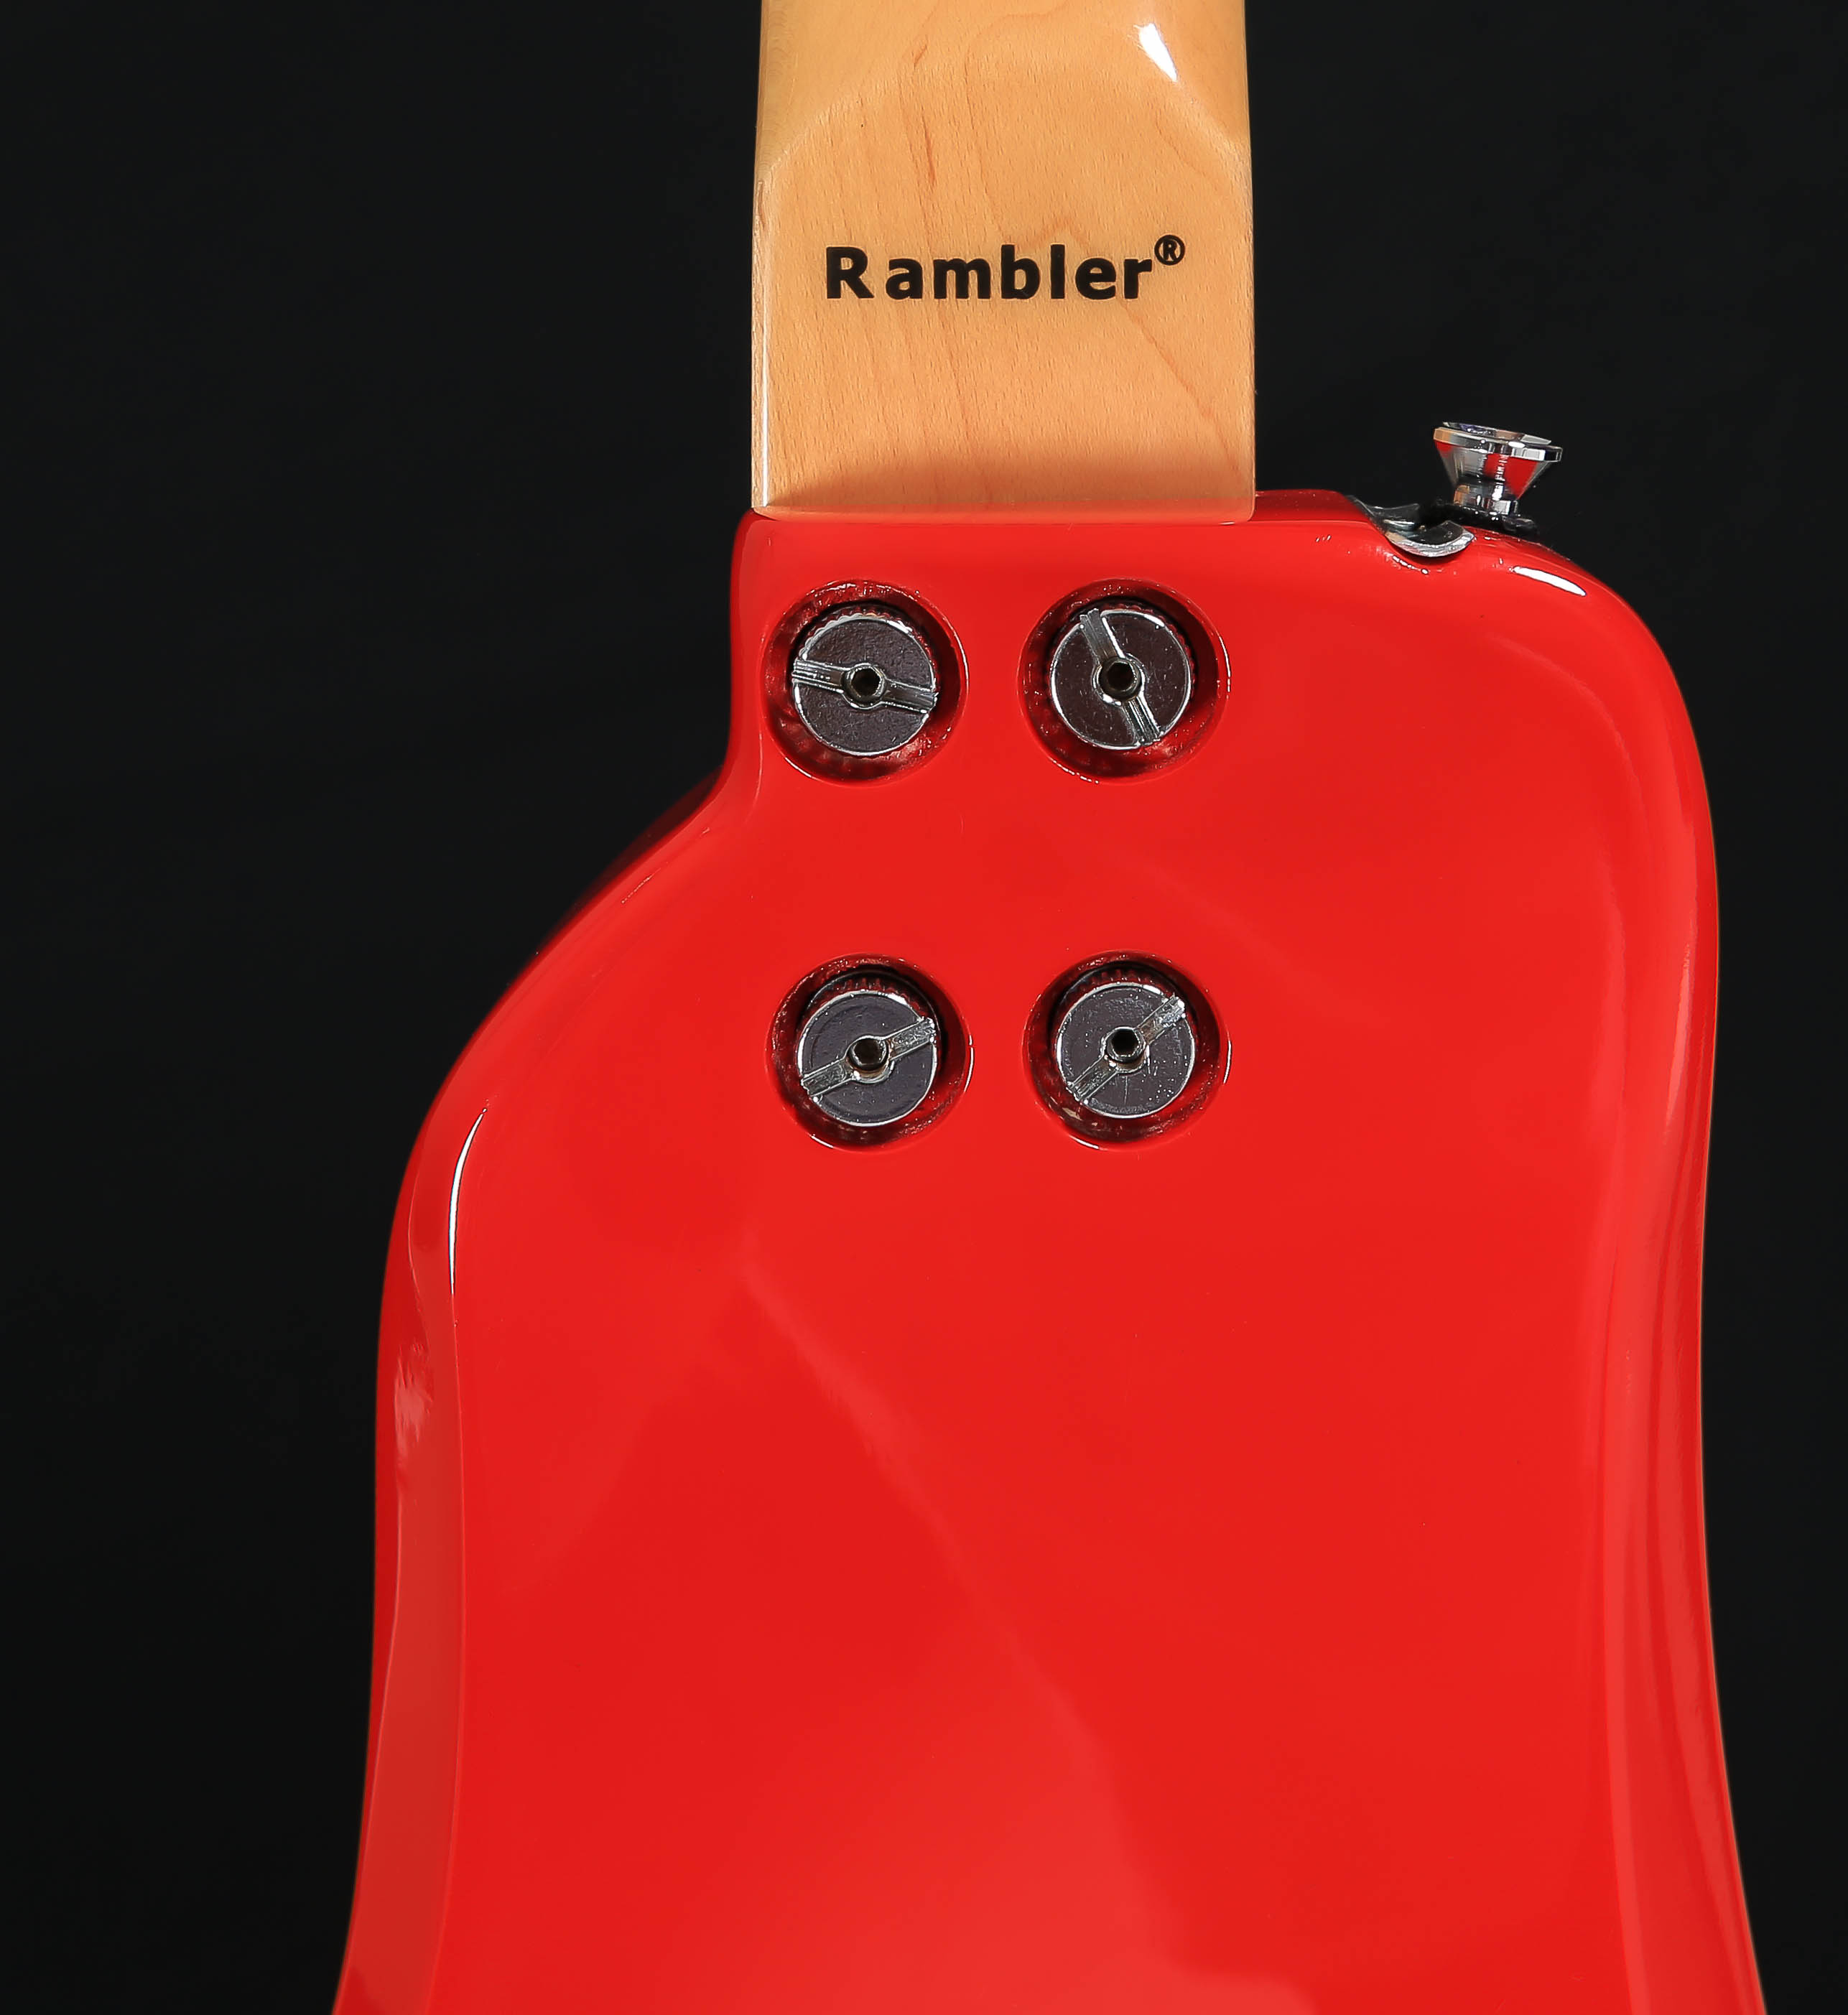 STROBELCASTER Plus Portable Guitar - Dakota Red - Back View